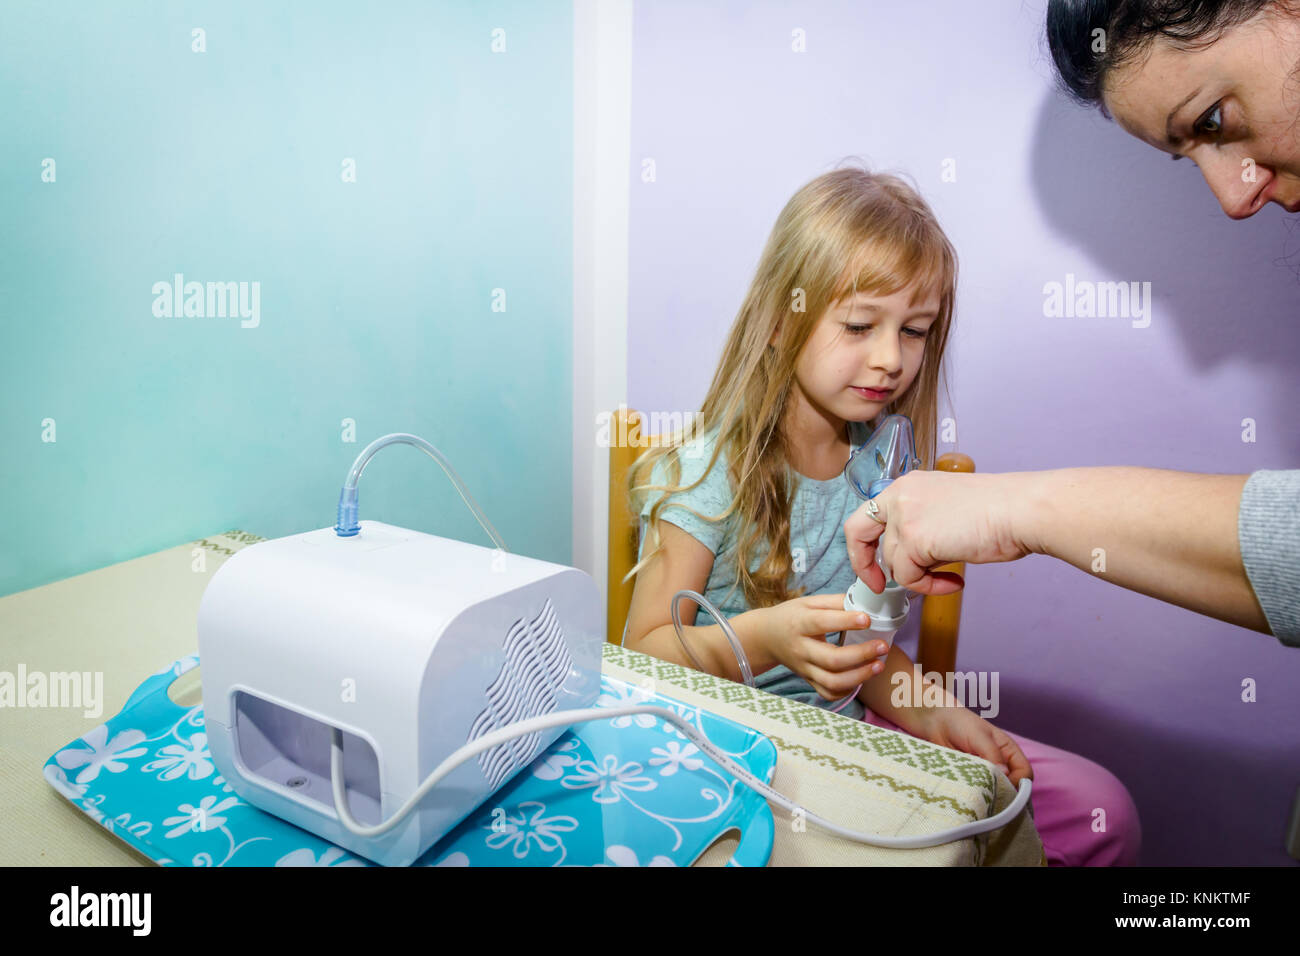 Woman is preparing inhalation treatment for child with asthmatic problems. - Stock Image